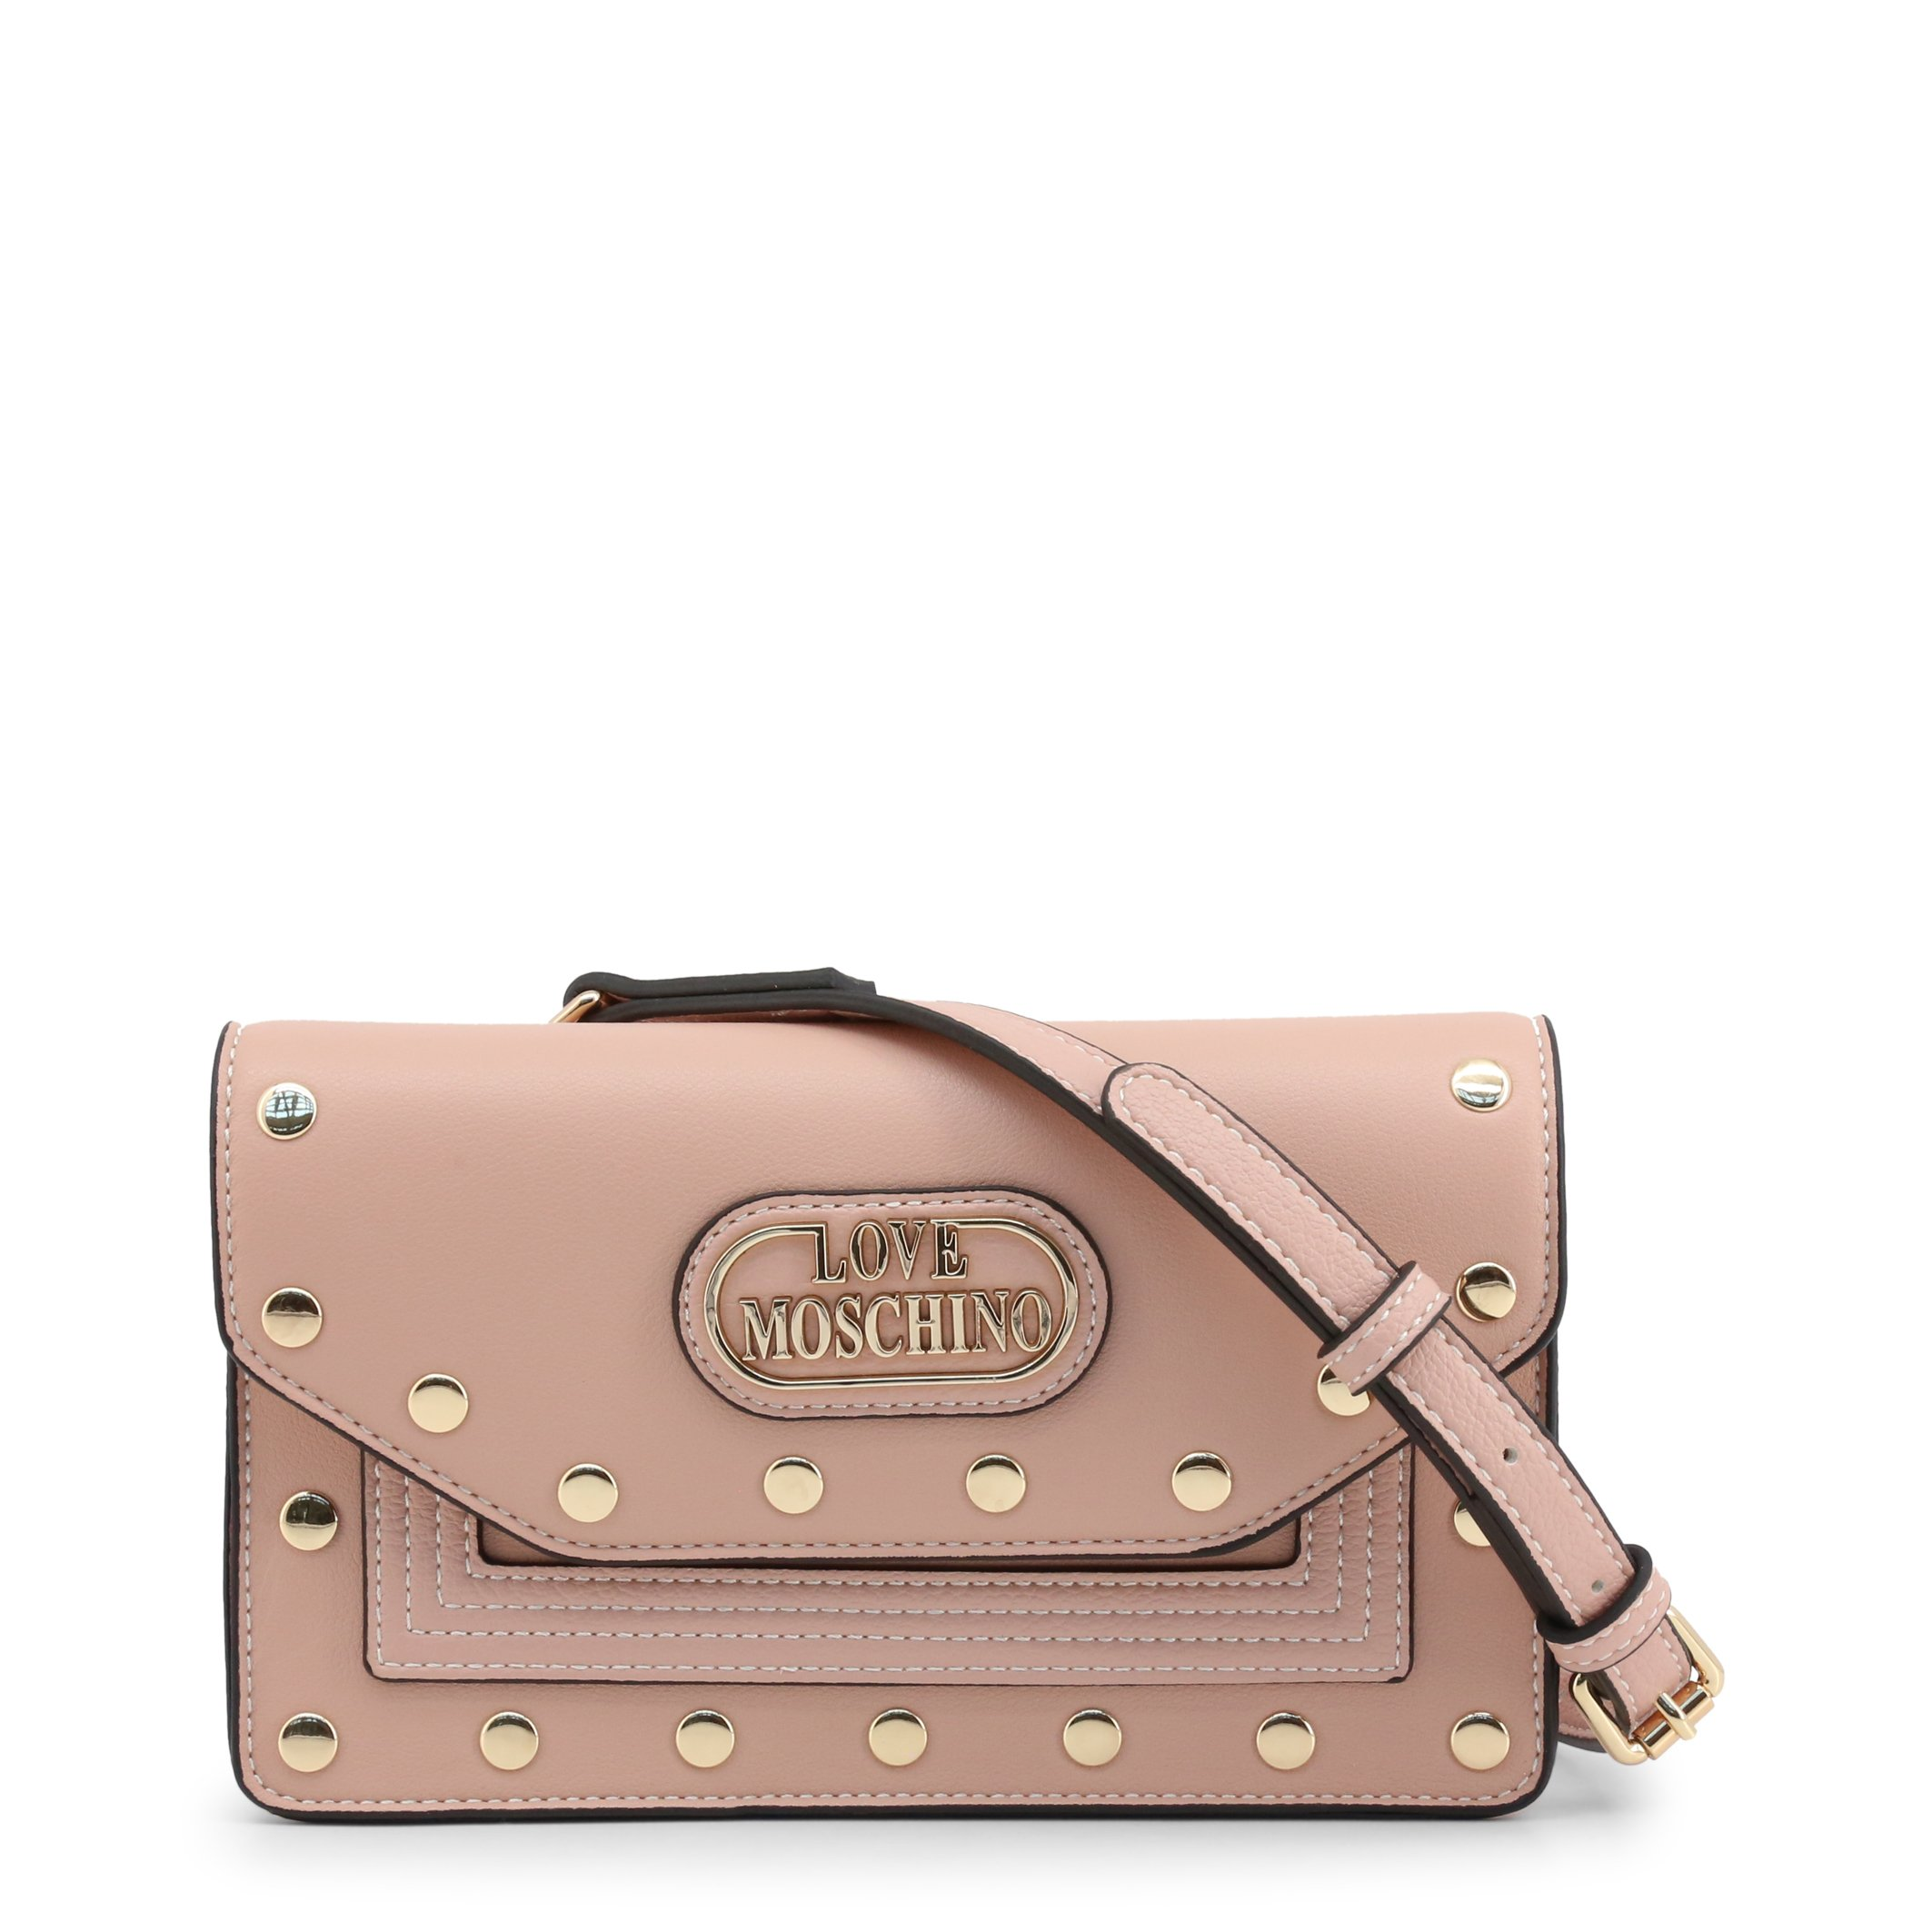 Love Moschino Women's Crossbody Bag Various Colours JC4048PP1CLE1 - pink NOSIZE